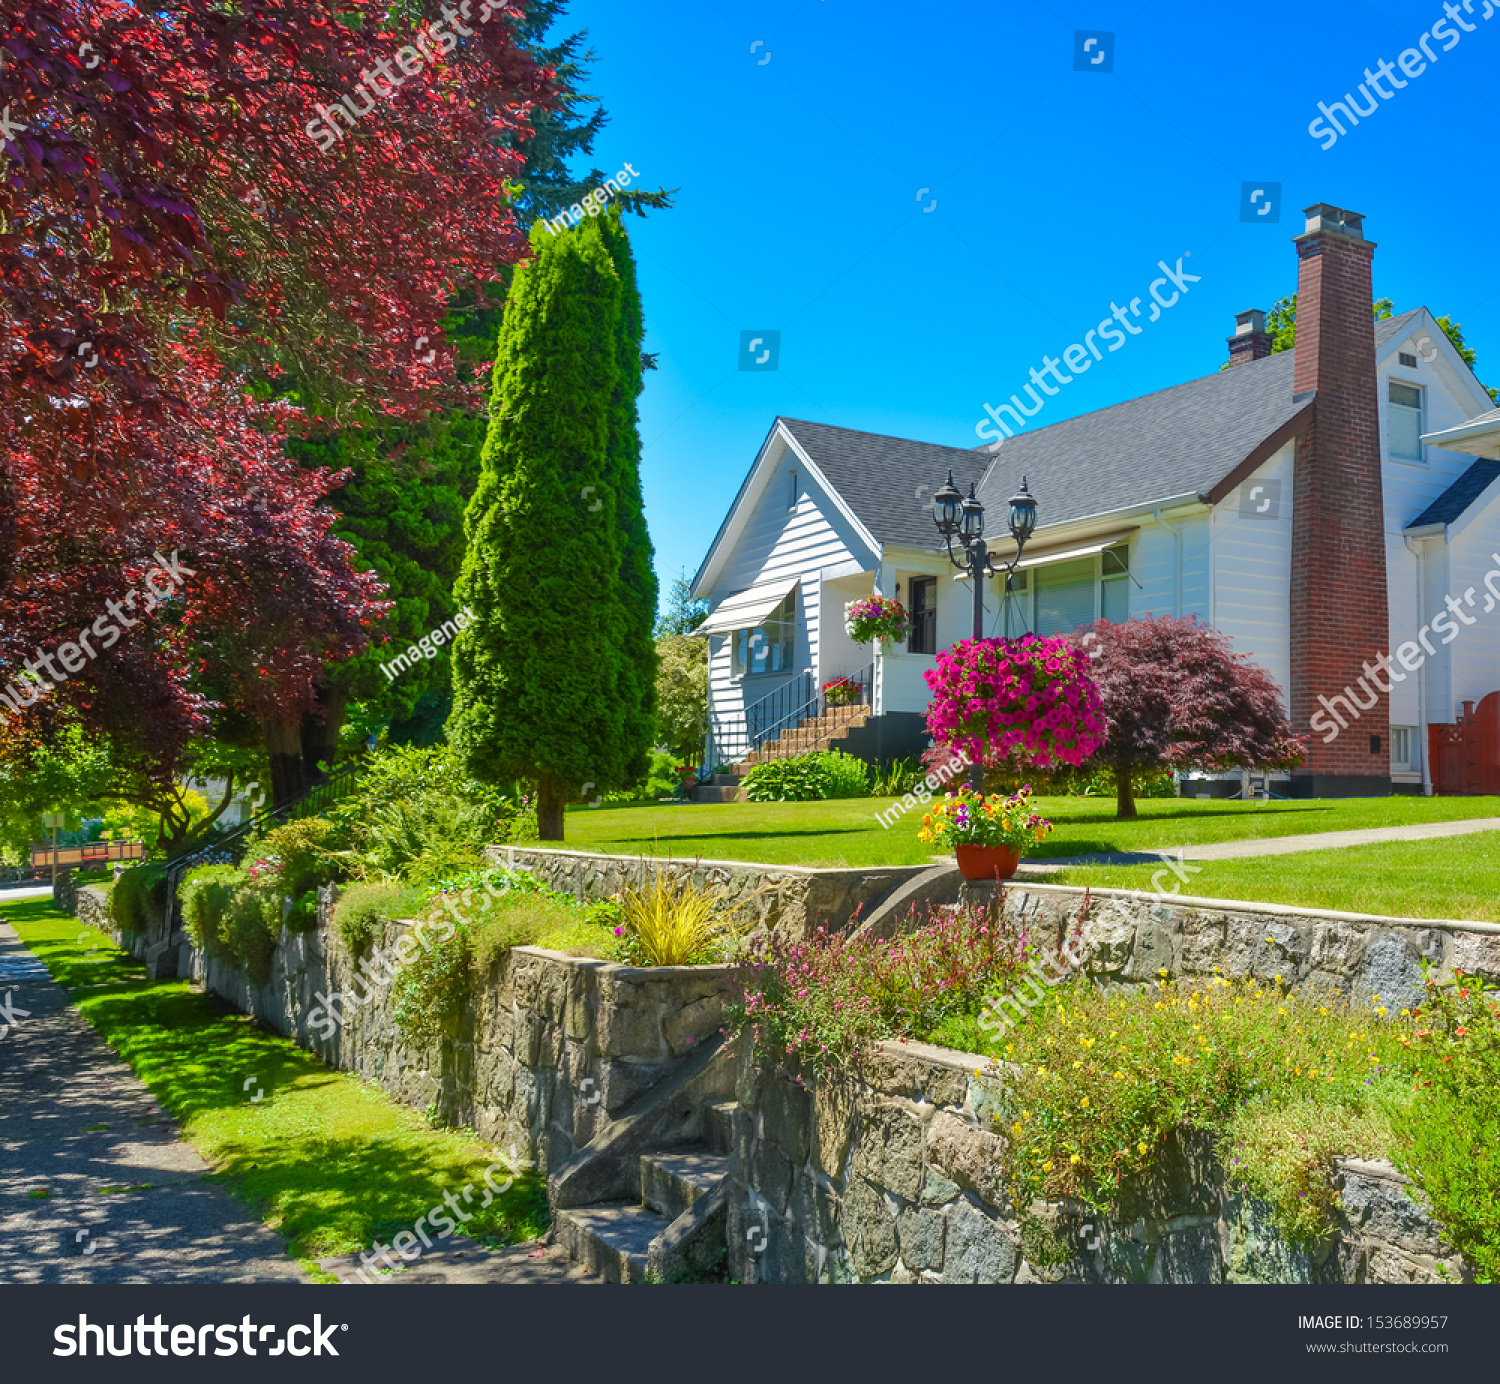 House on terrace land vancouver canada stock photo for The terrace land and house